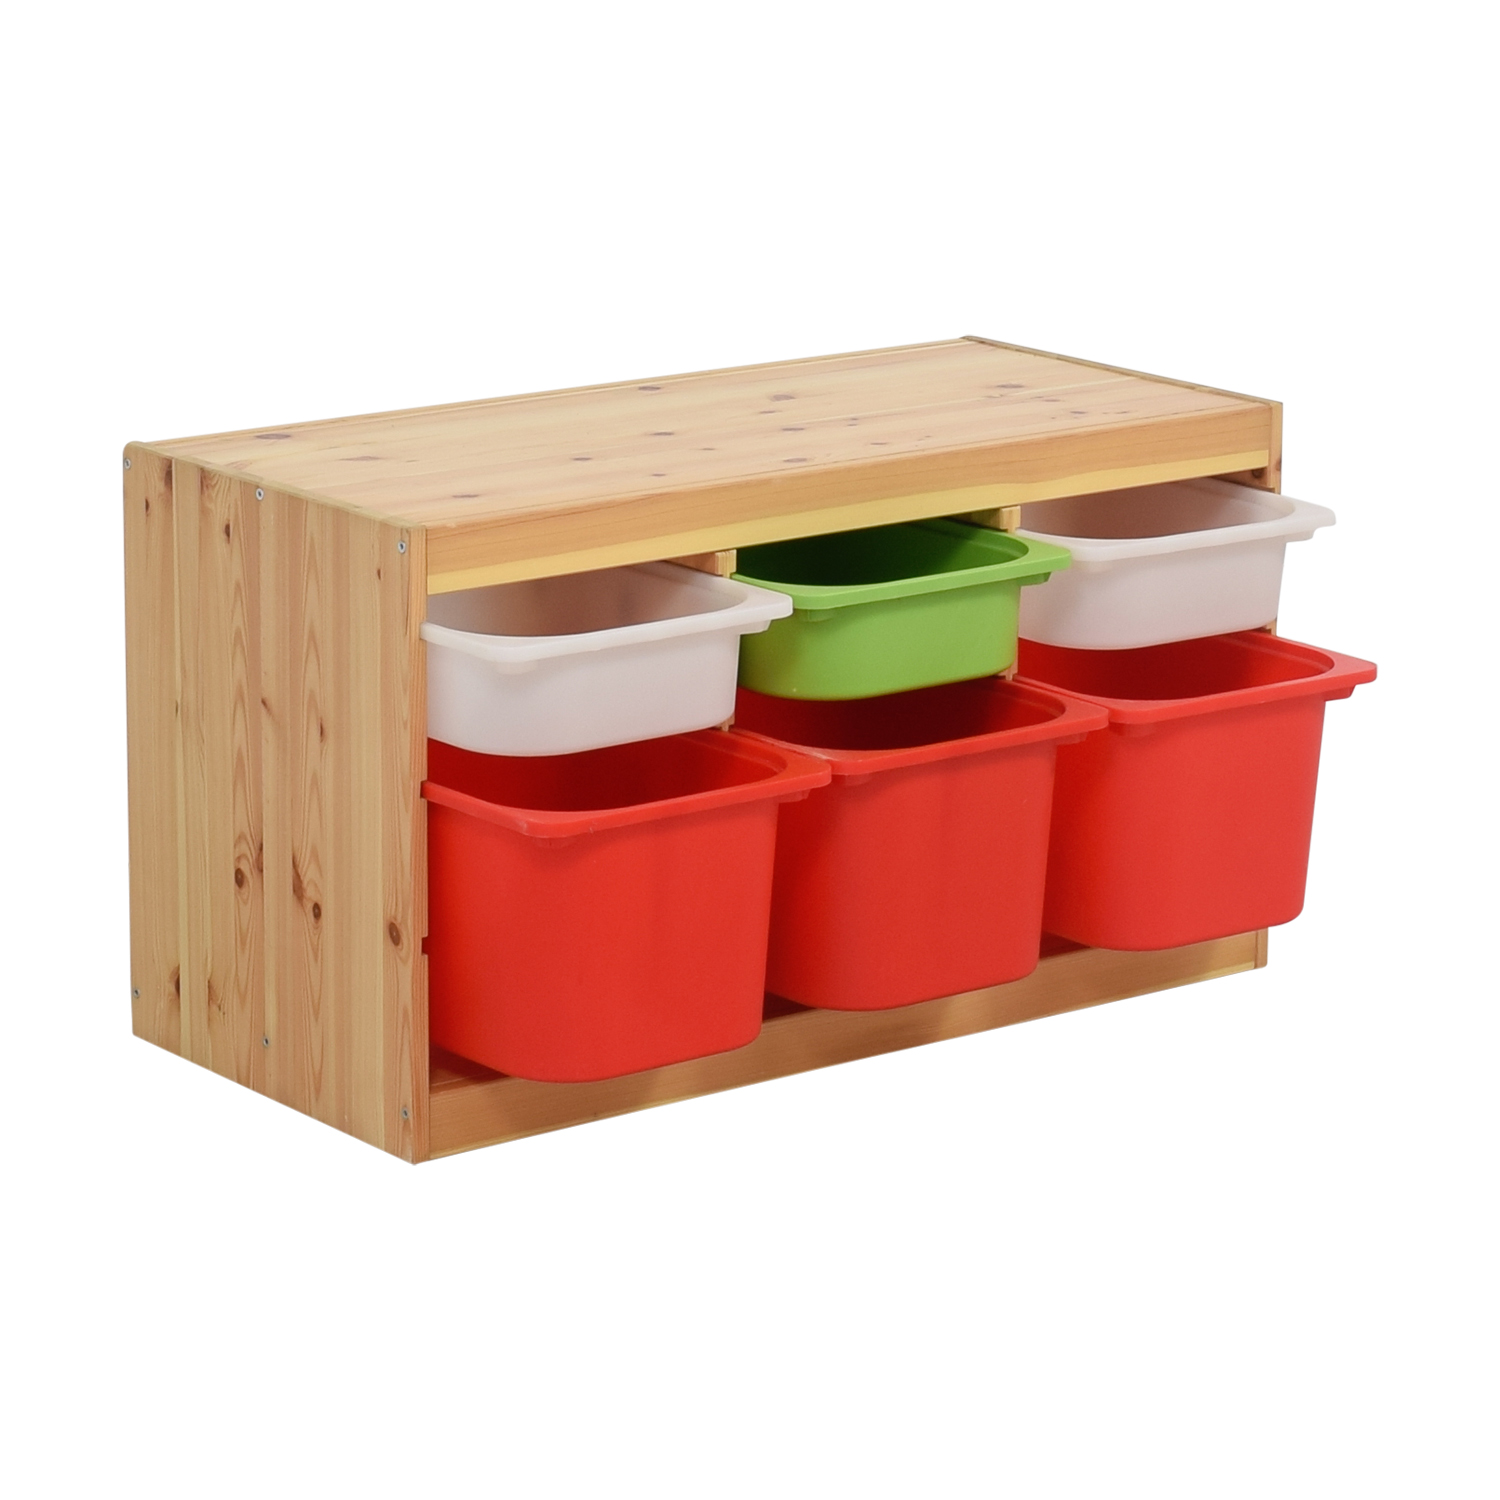 IKEA Child Wooden Storage with Bins / Bookcases & Shelving